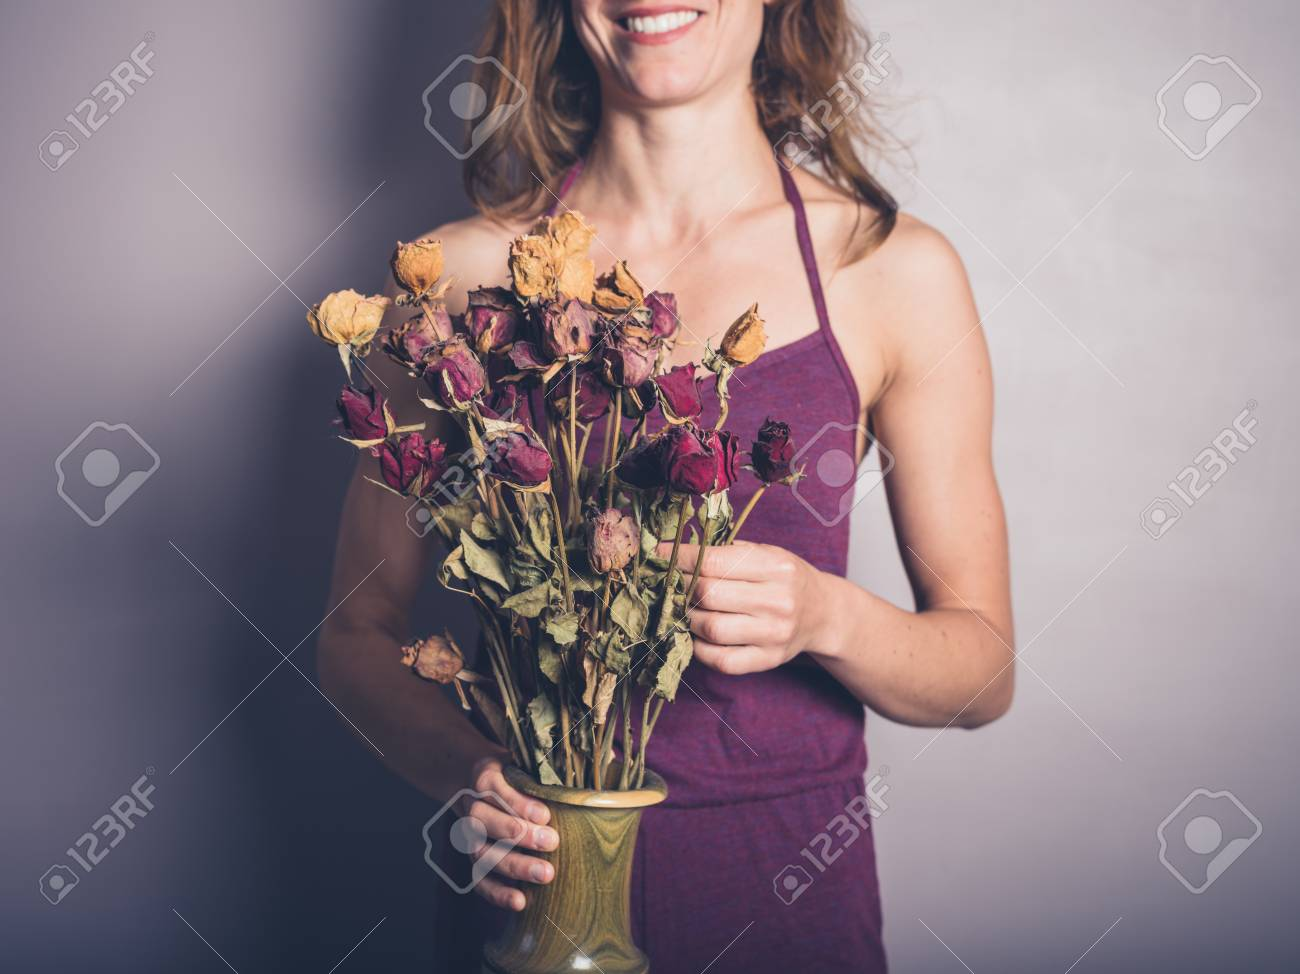 A Young Woman Is Standing With A Bouquet Of Dead Flowers Stock Photo